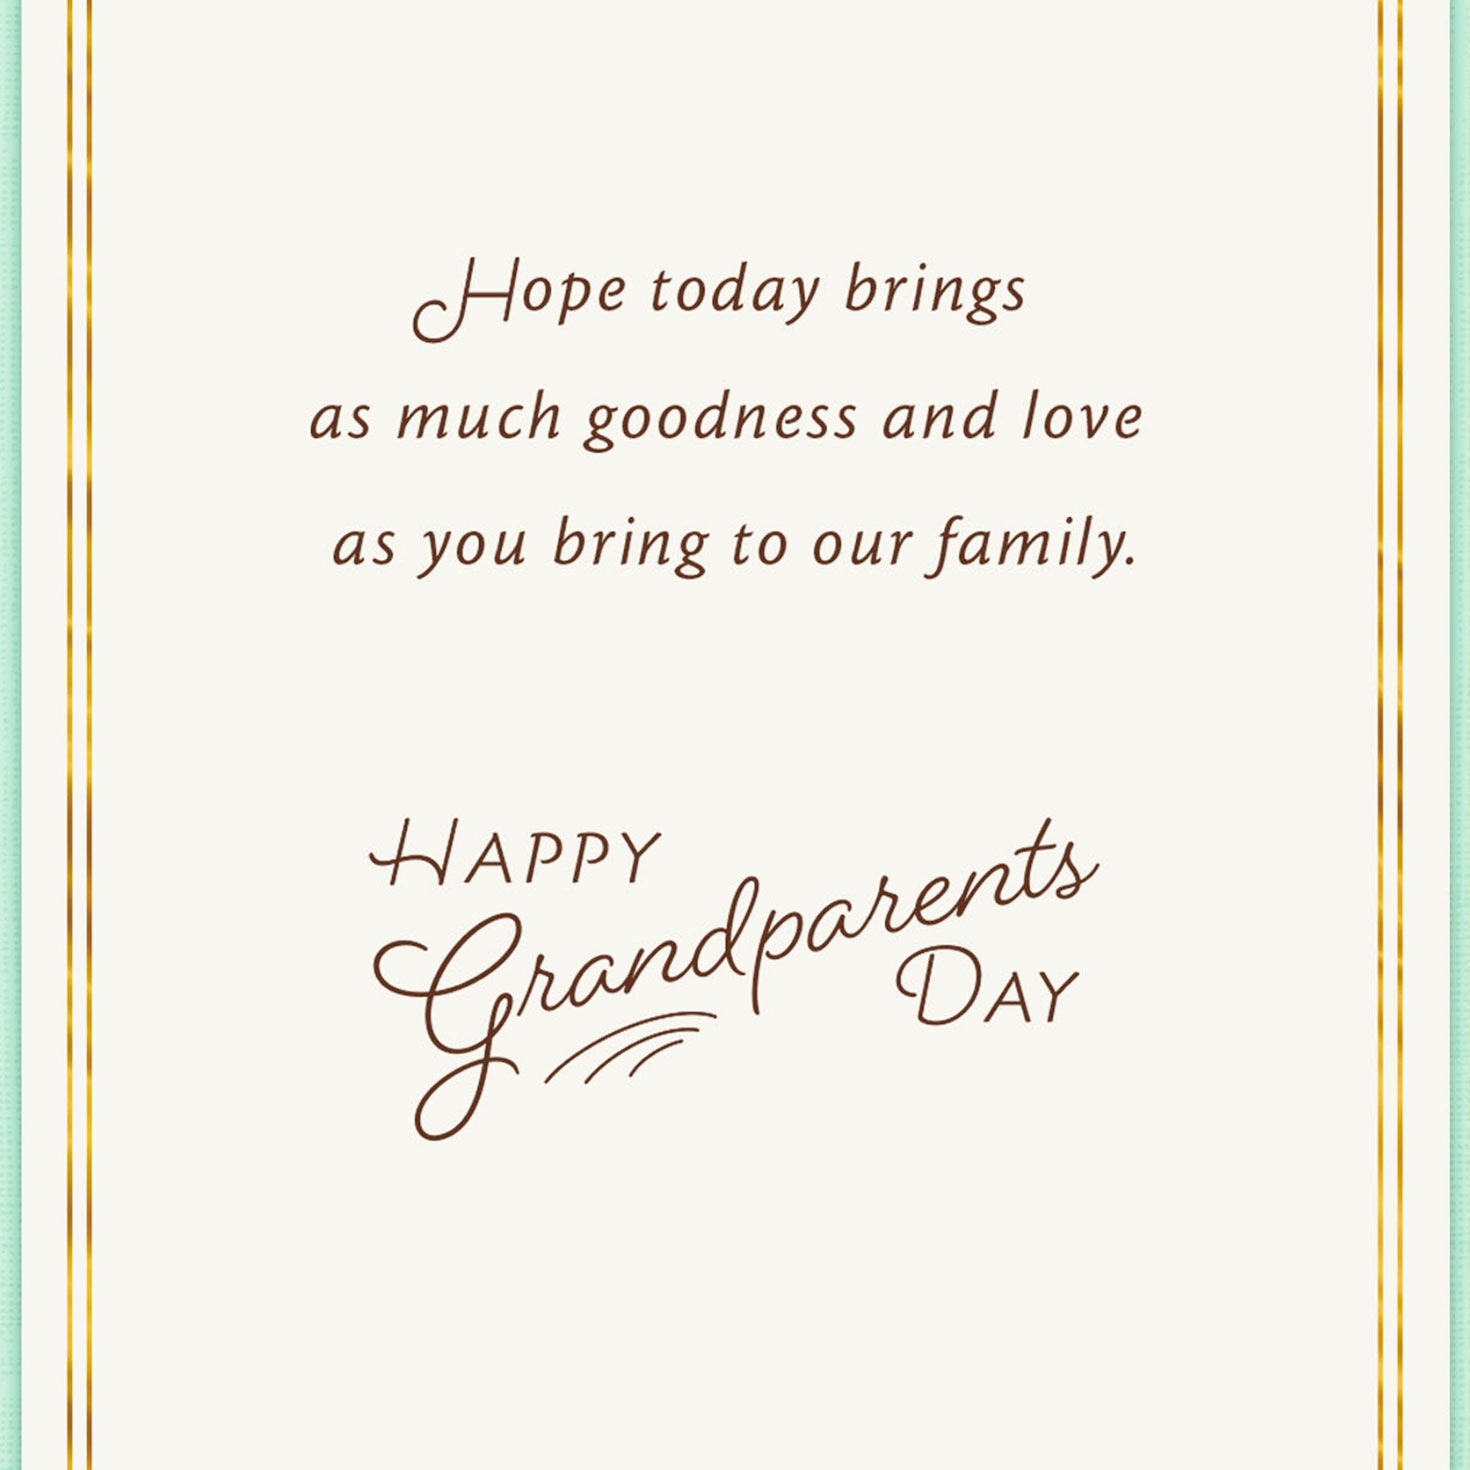 graphic about Printable Grandparents Day Card named Grandparents Working day Playing cards Hallmark